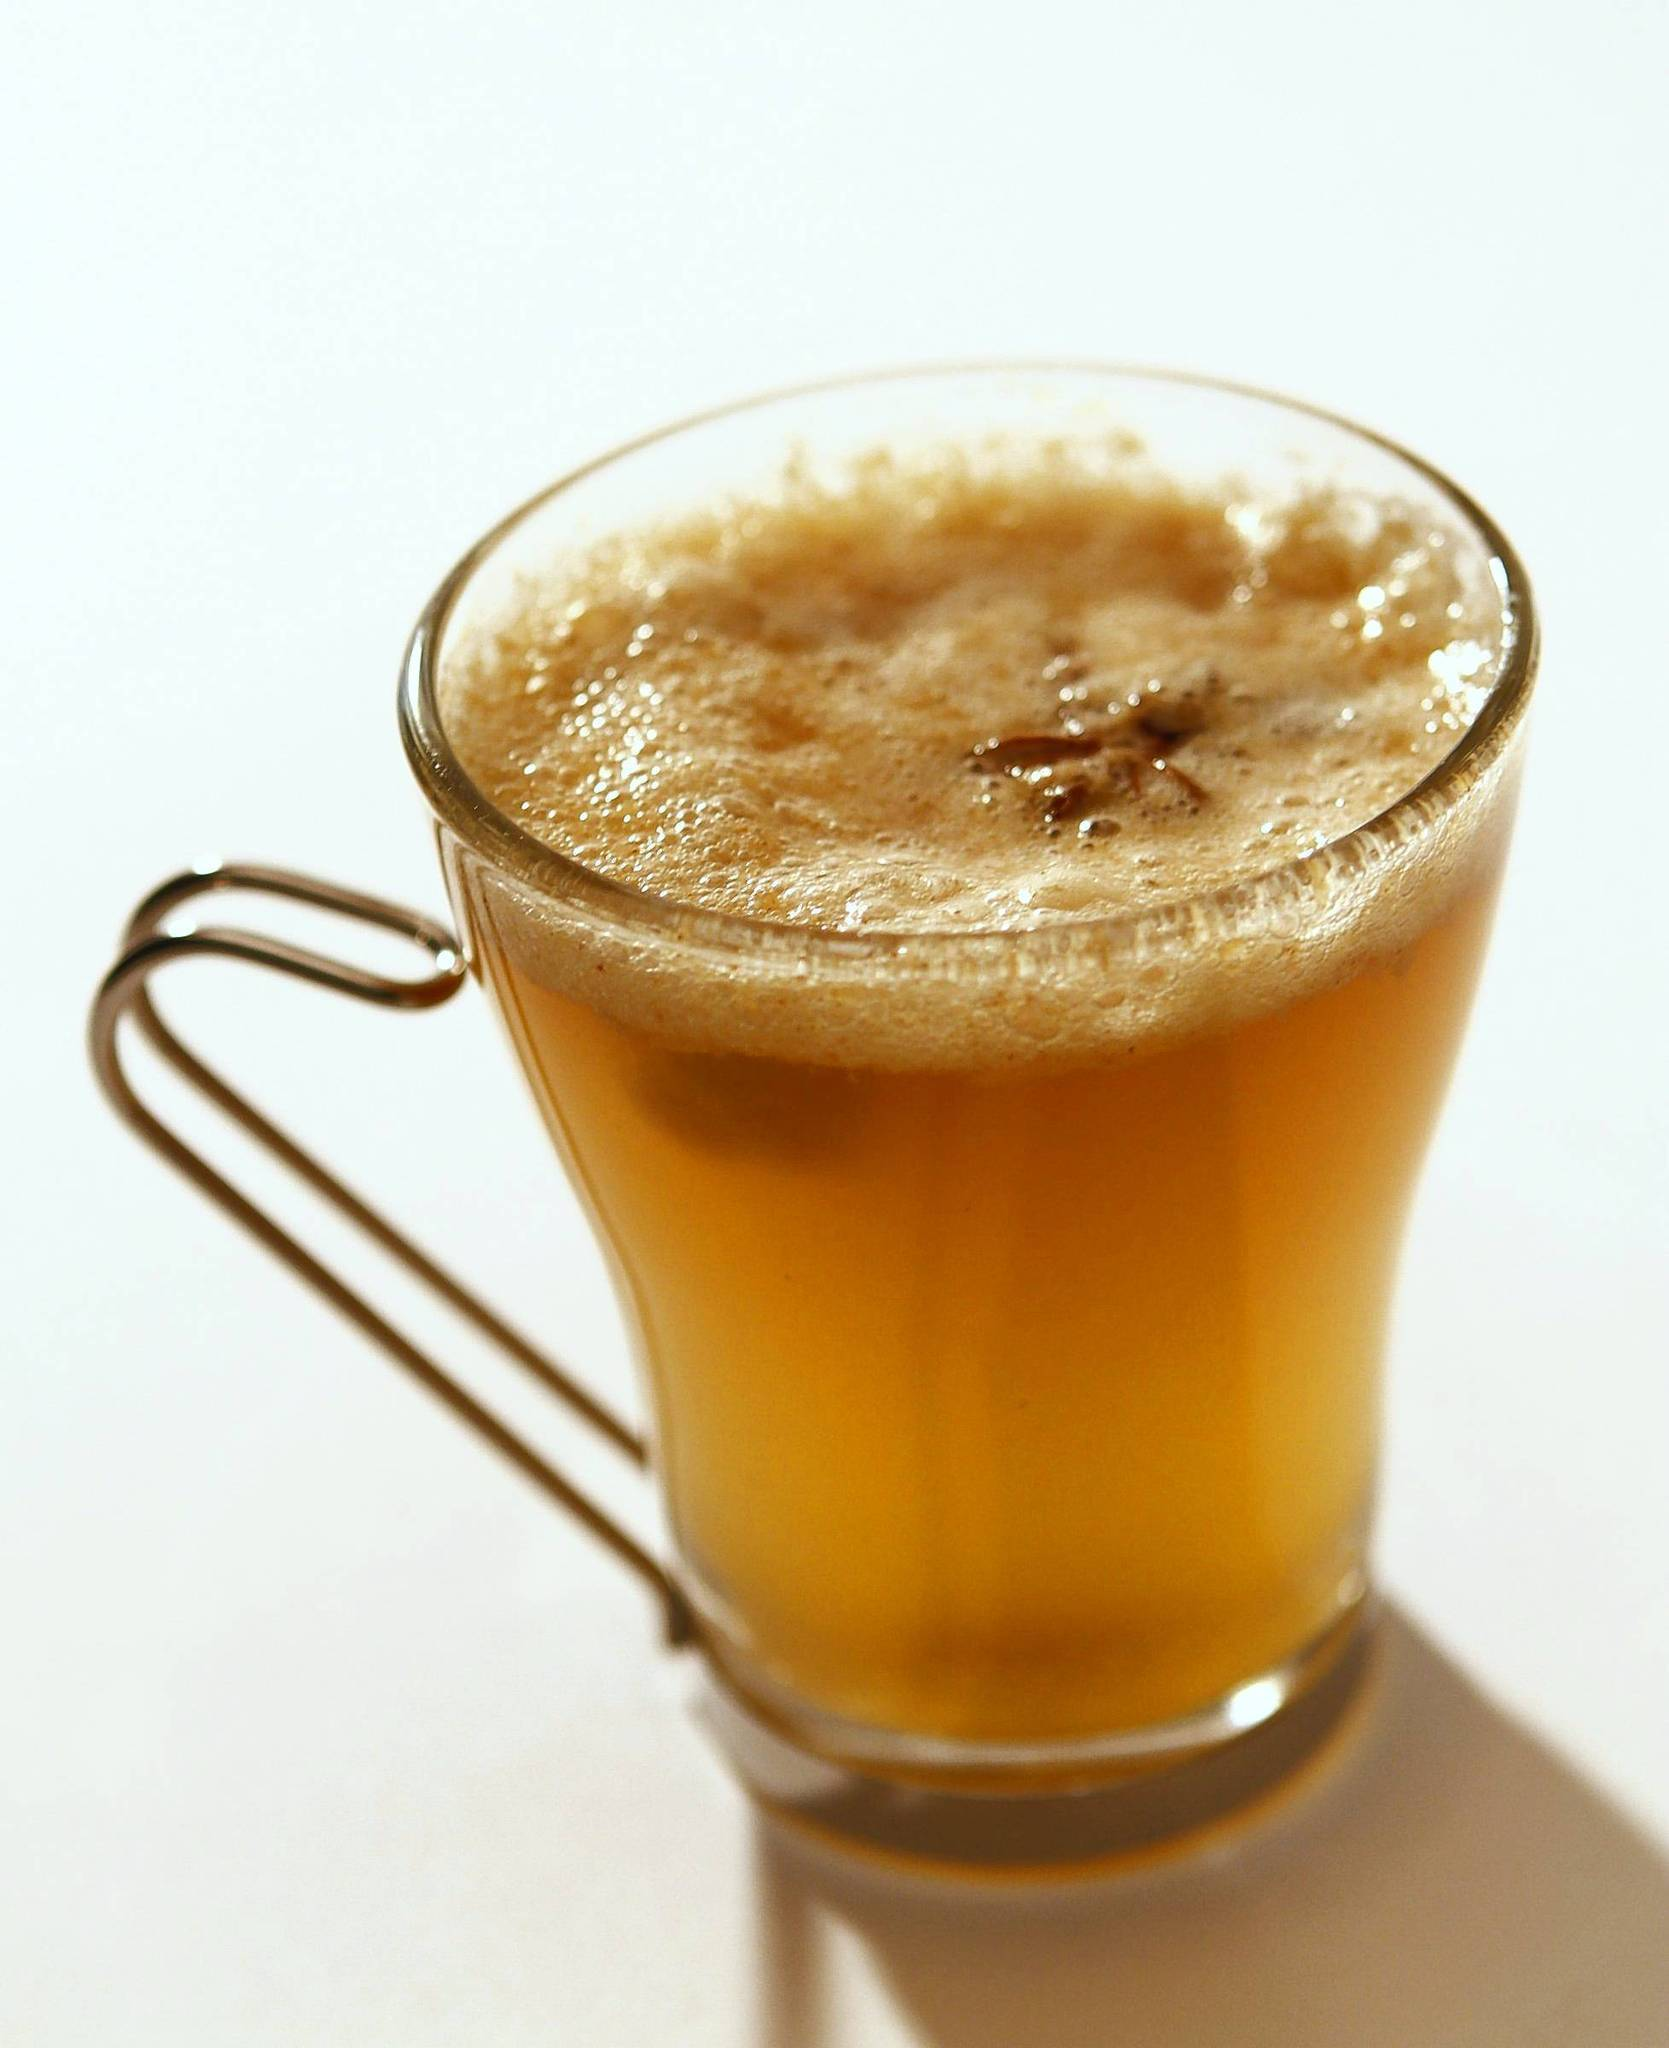 Le Ka's hot banana buttered rum, created by Andrew Parish. Recipe.